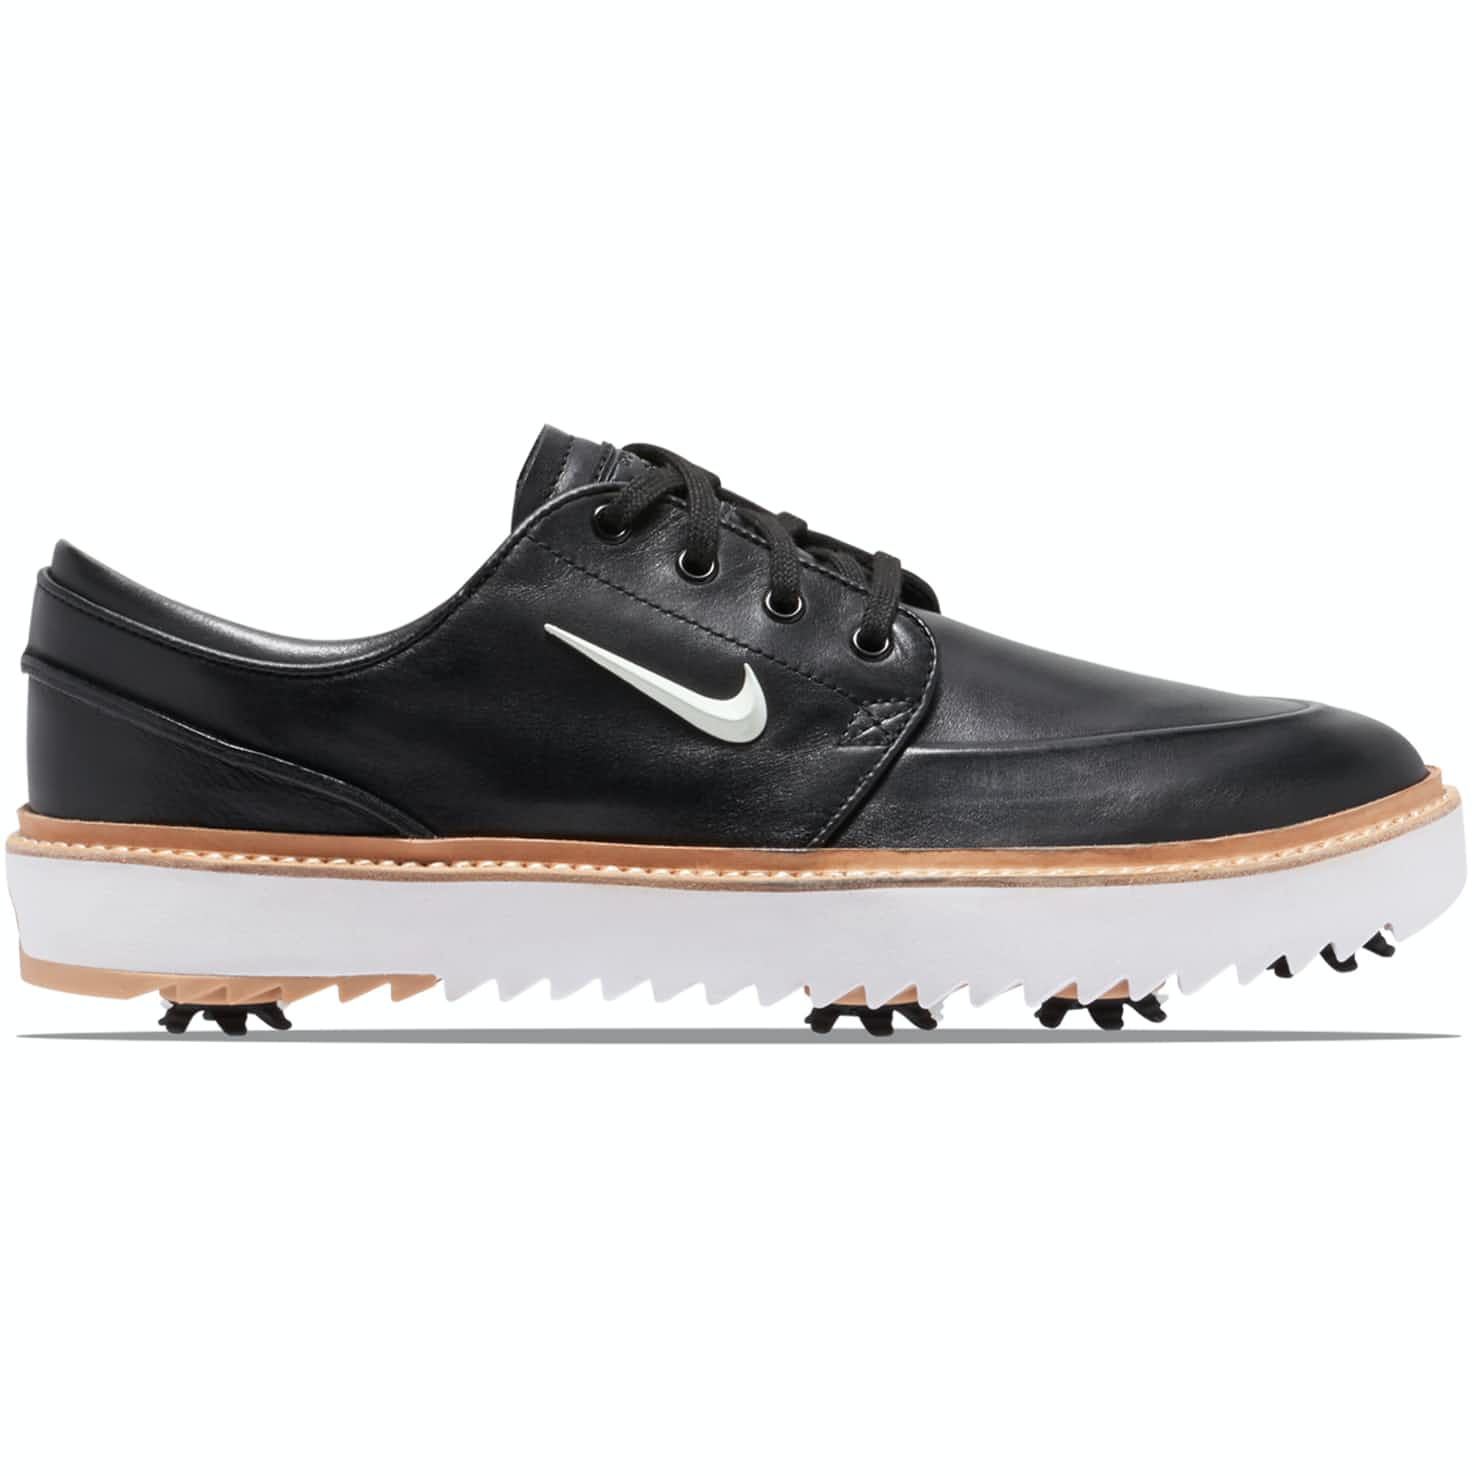 Janoski Golf Tour Black/Metallic White/Vachetta Tan - AW19